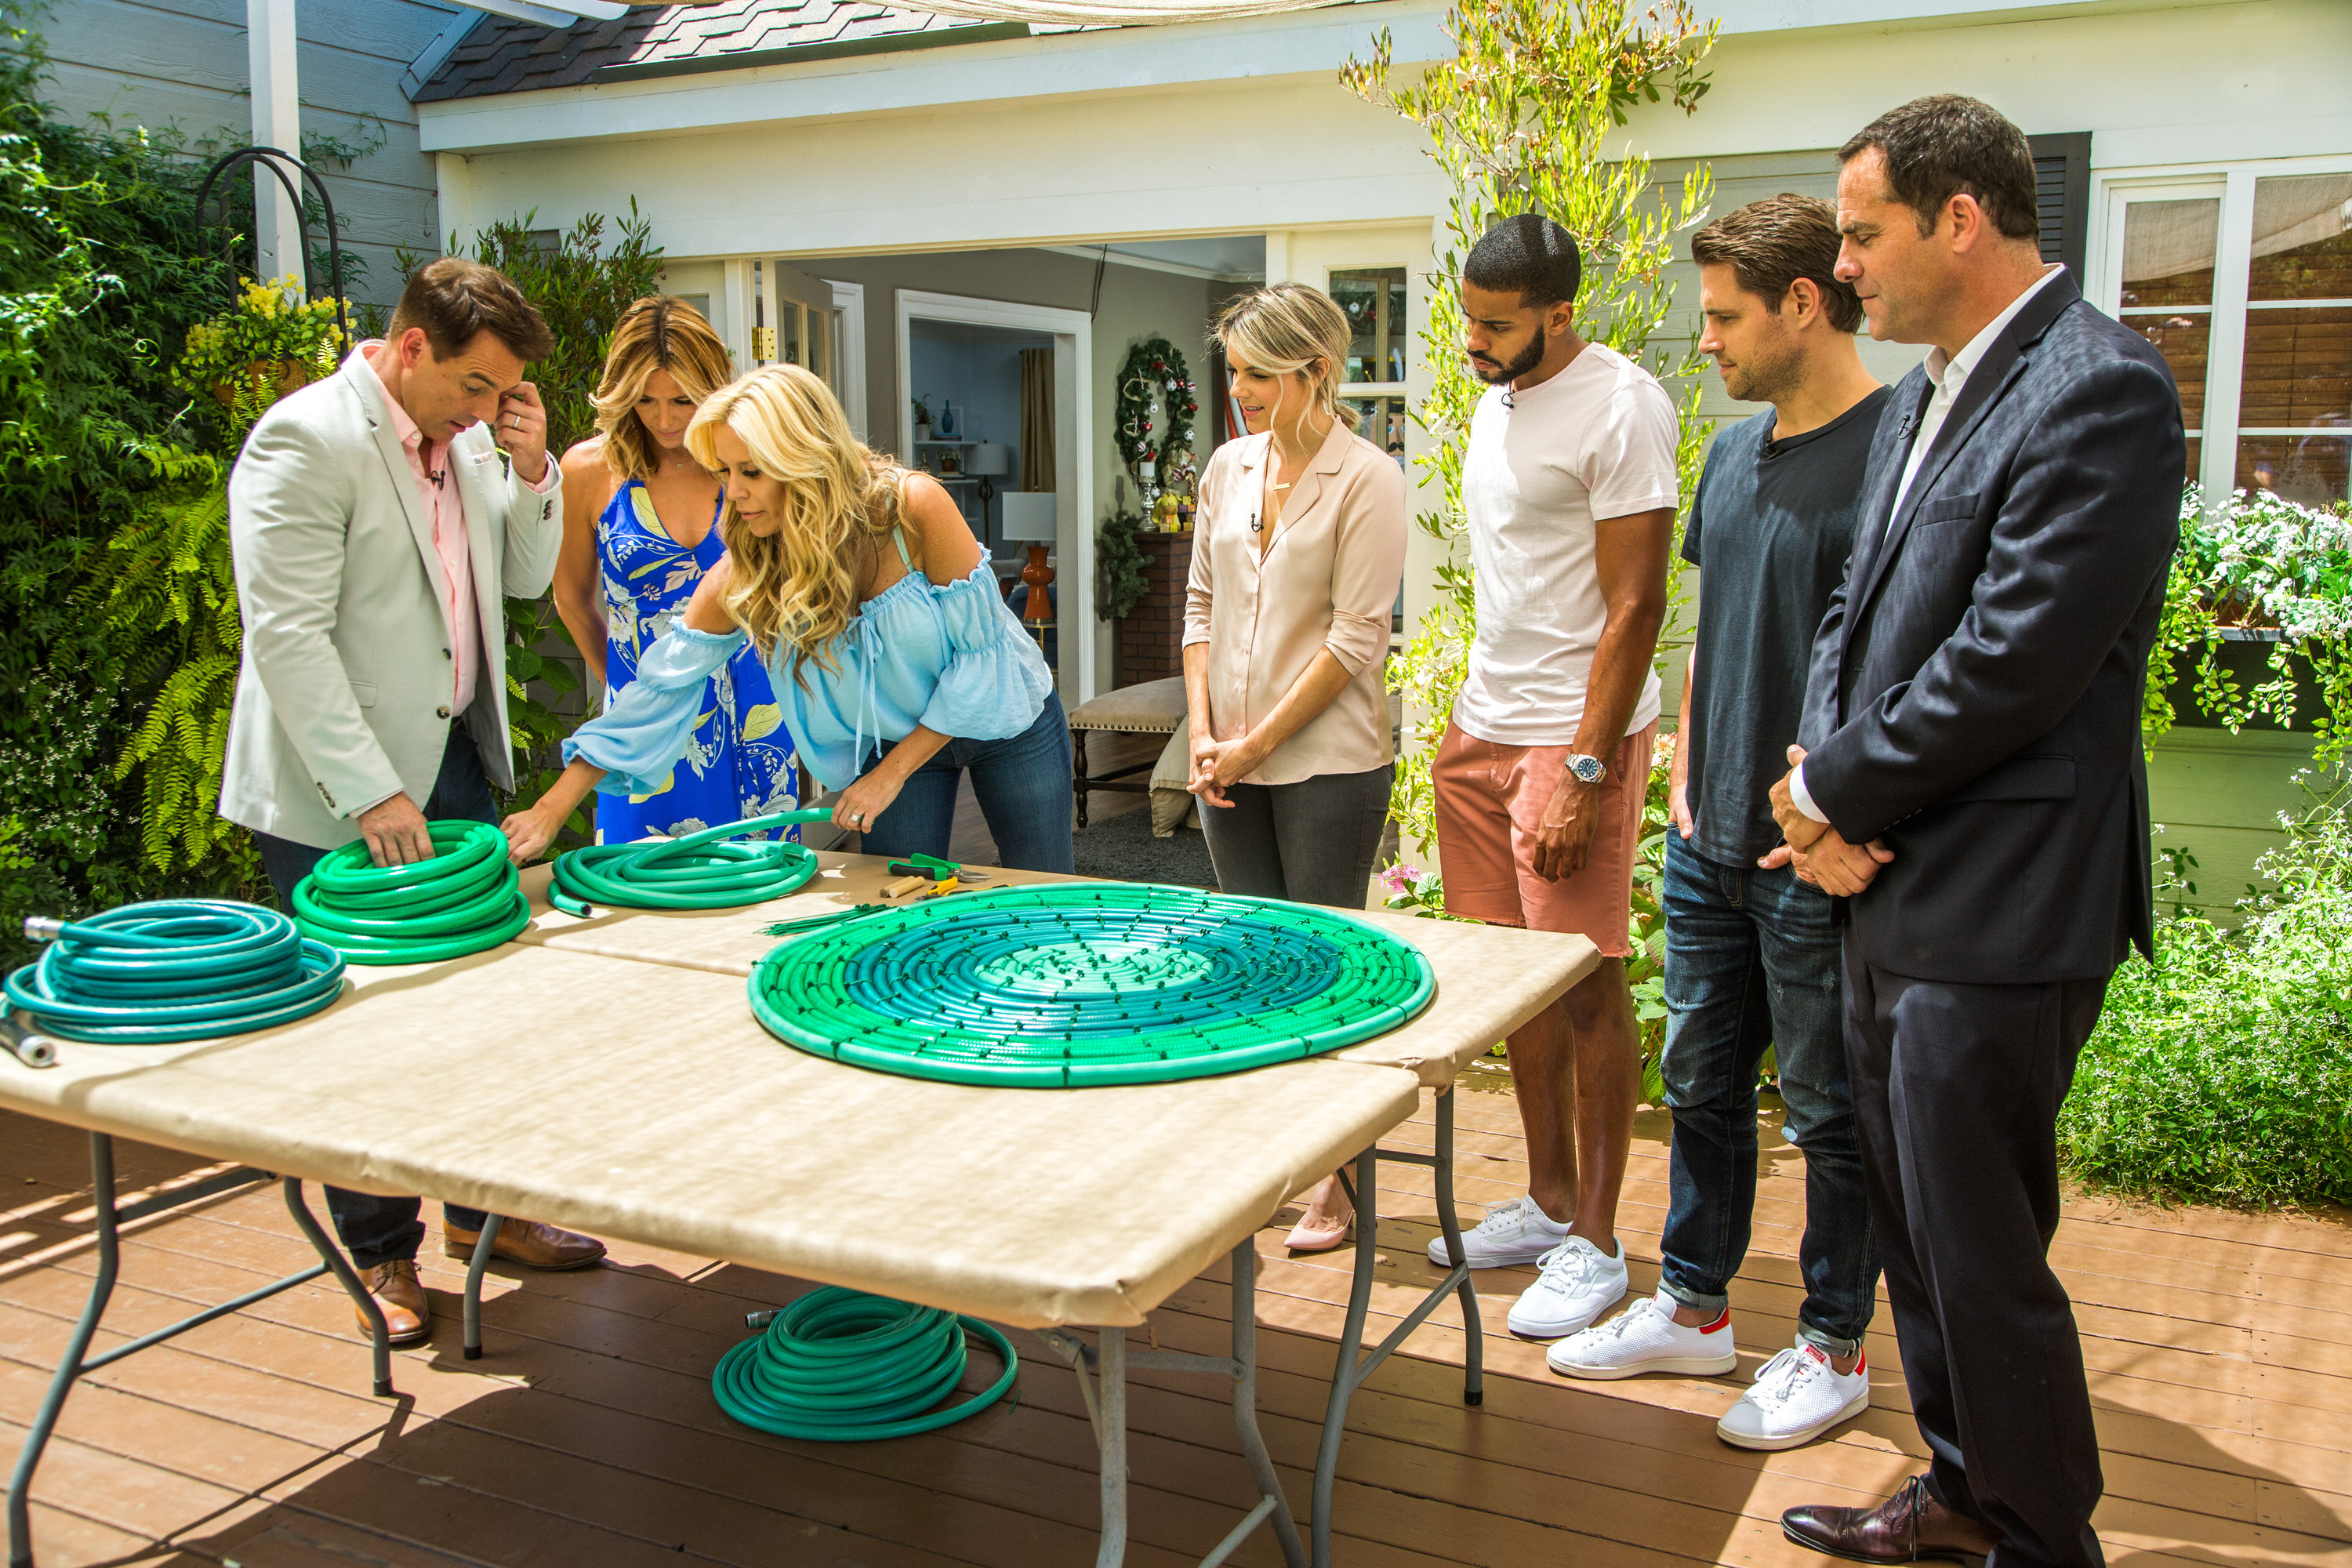 DIY Recycled Hose Outdoor Rug Home & Family Video